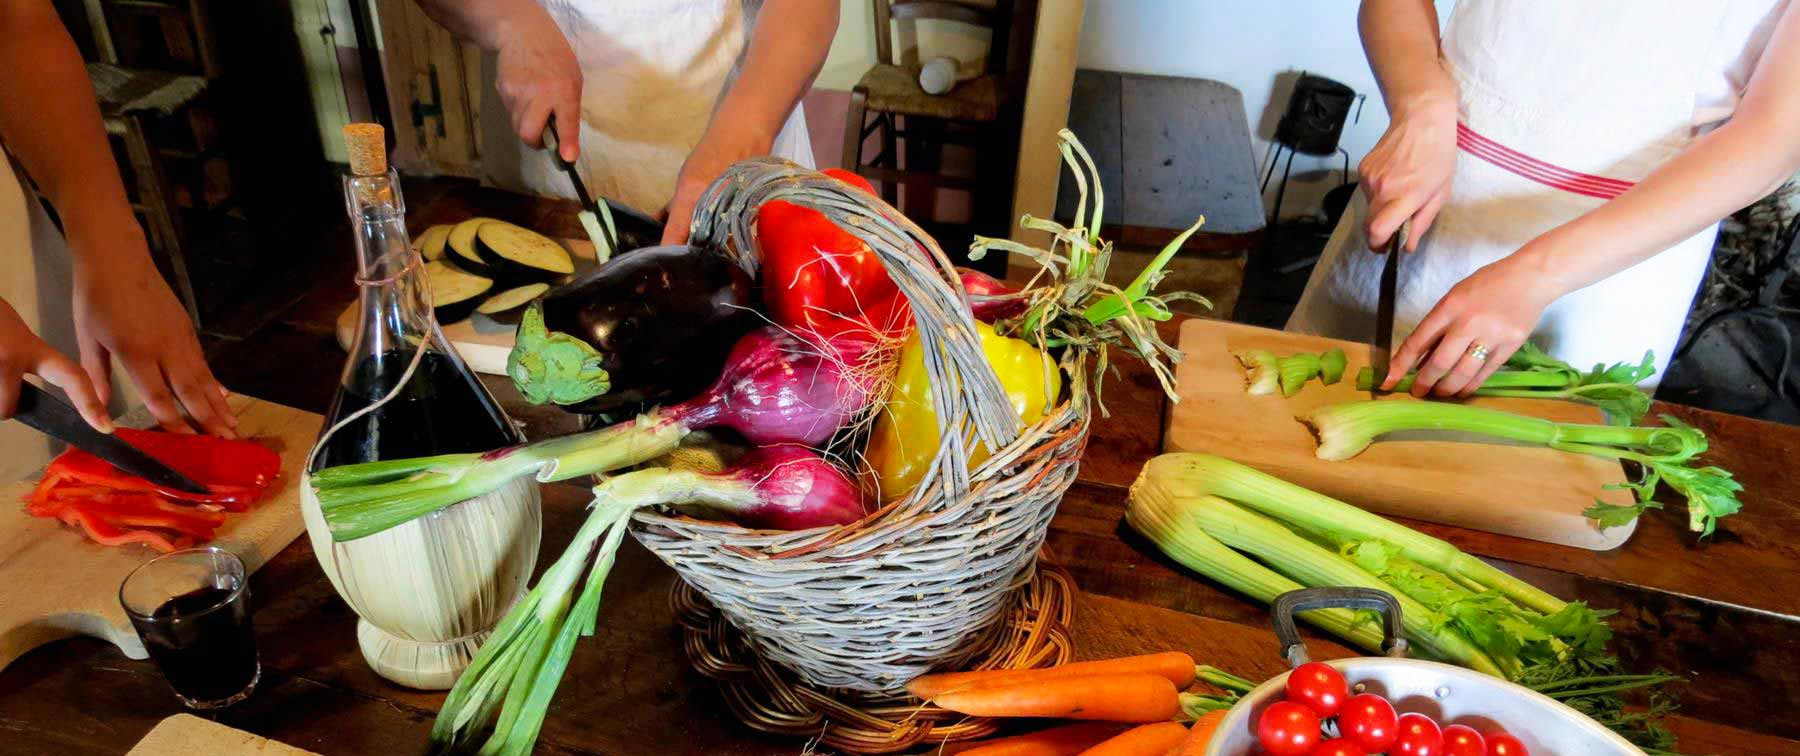 italian cooking class chopping vegetables - cooking classes in Chianti Siena Tuscany